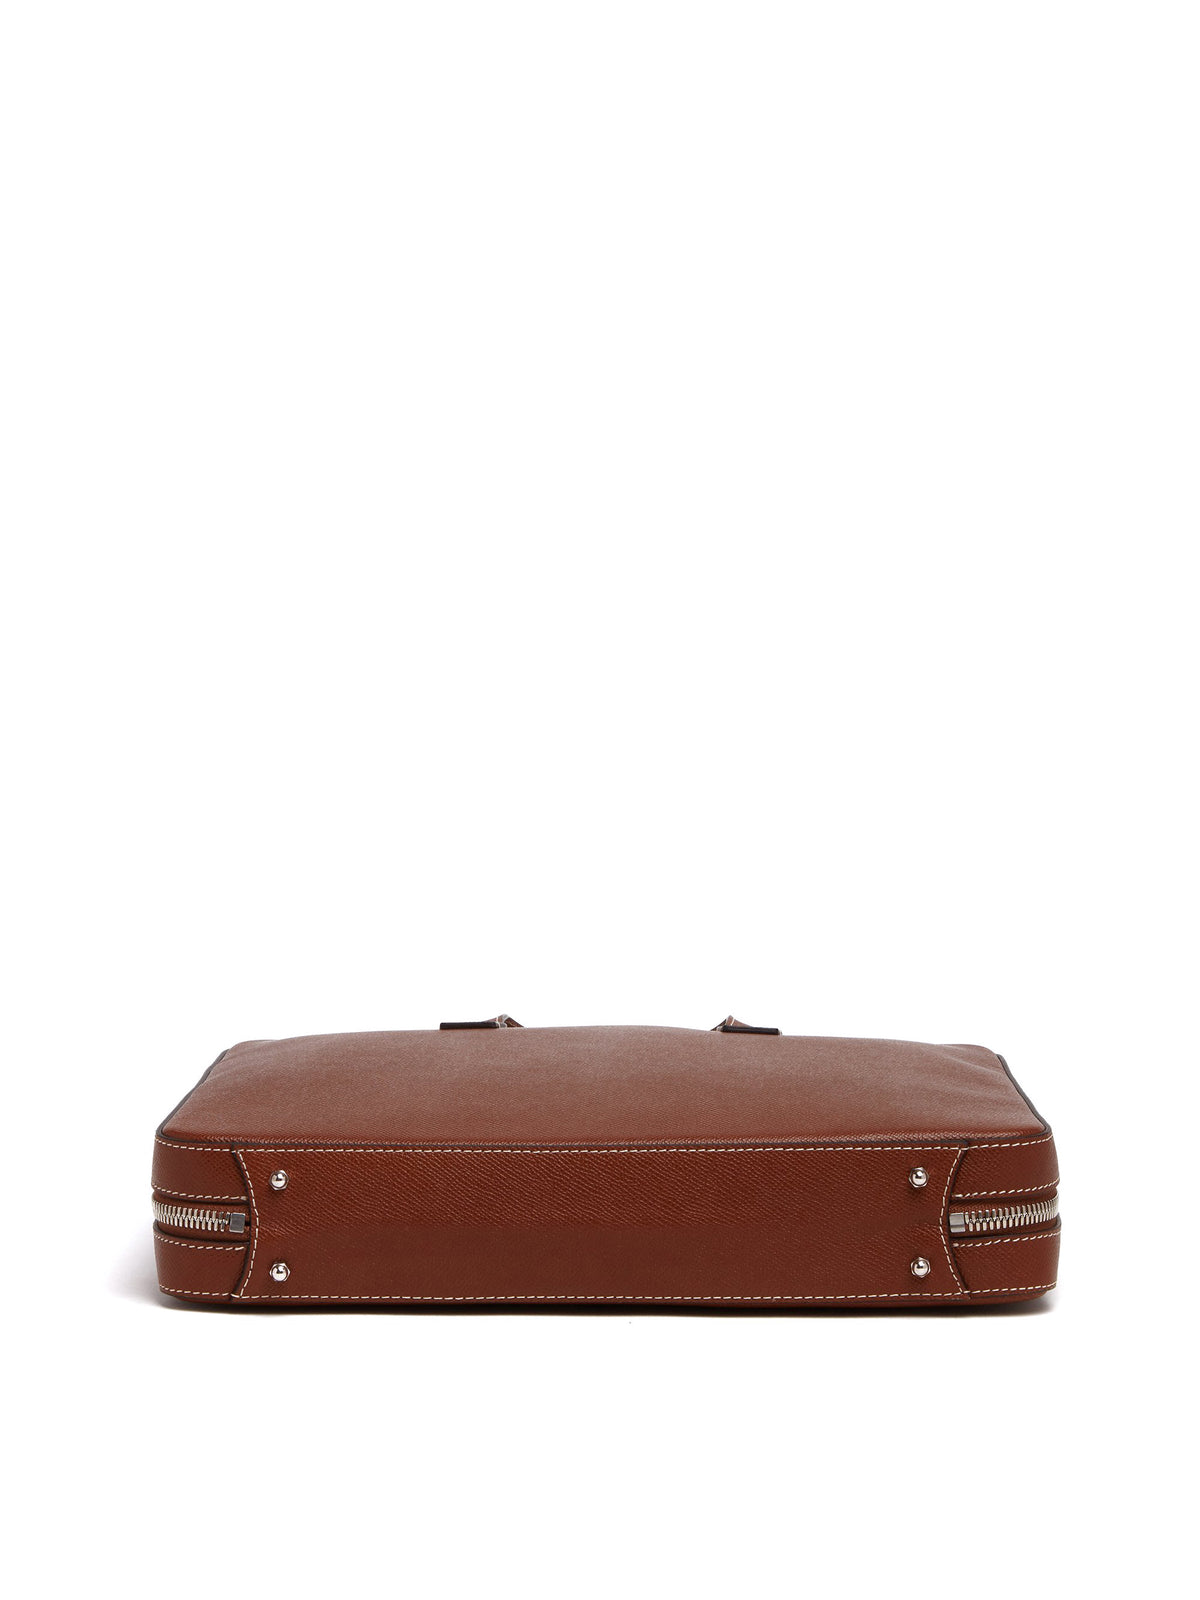 Mark Cross Parker Leather Briefcase Saffiano Acorn Side